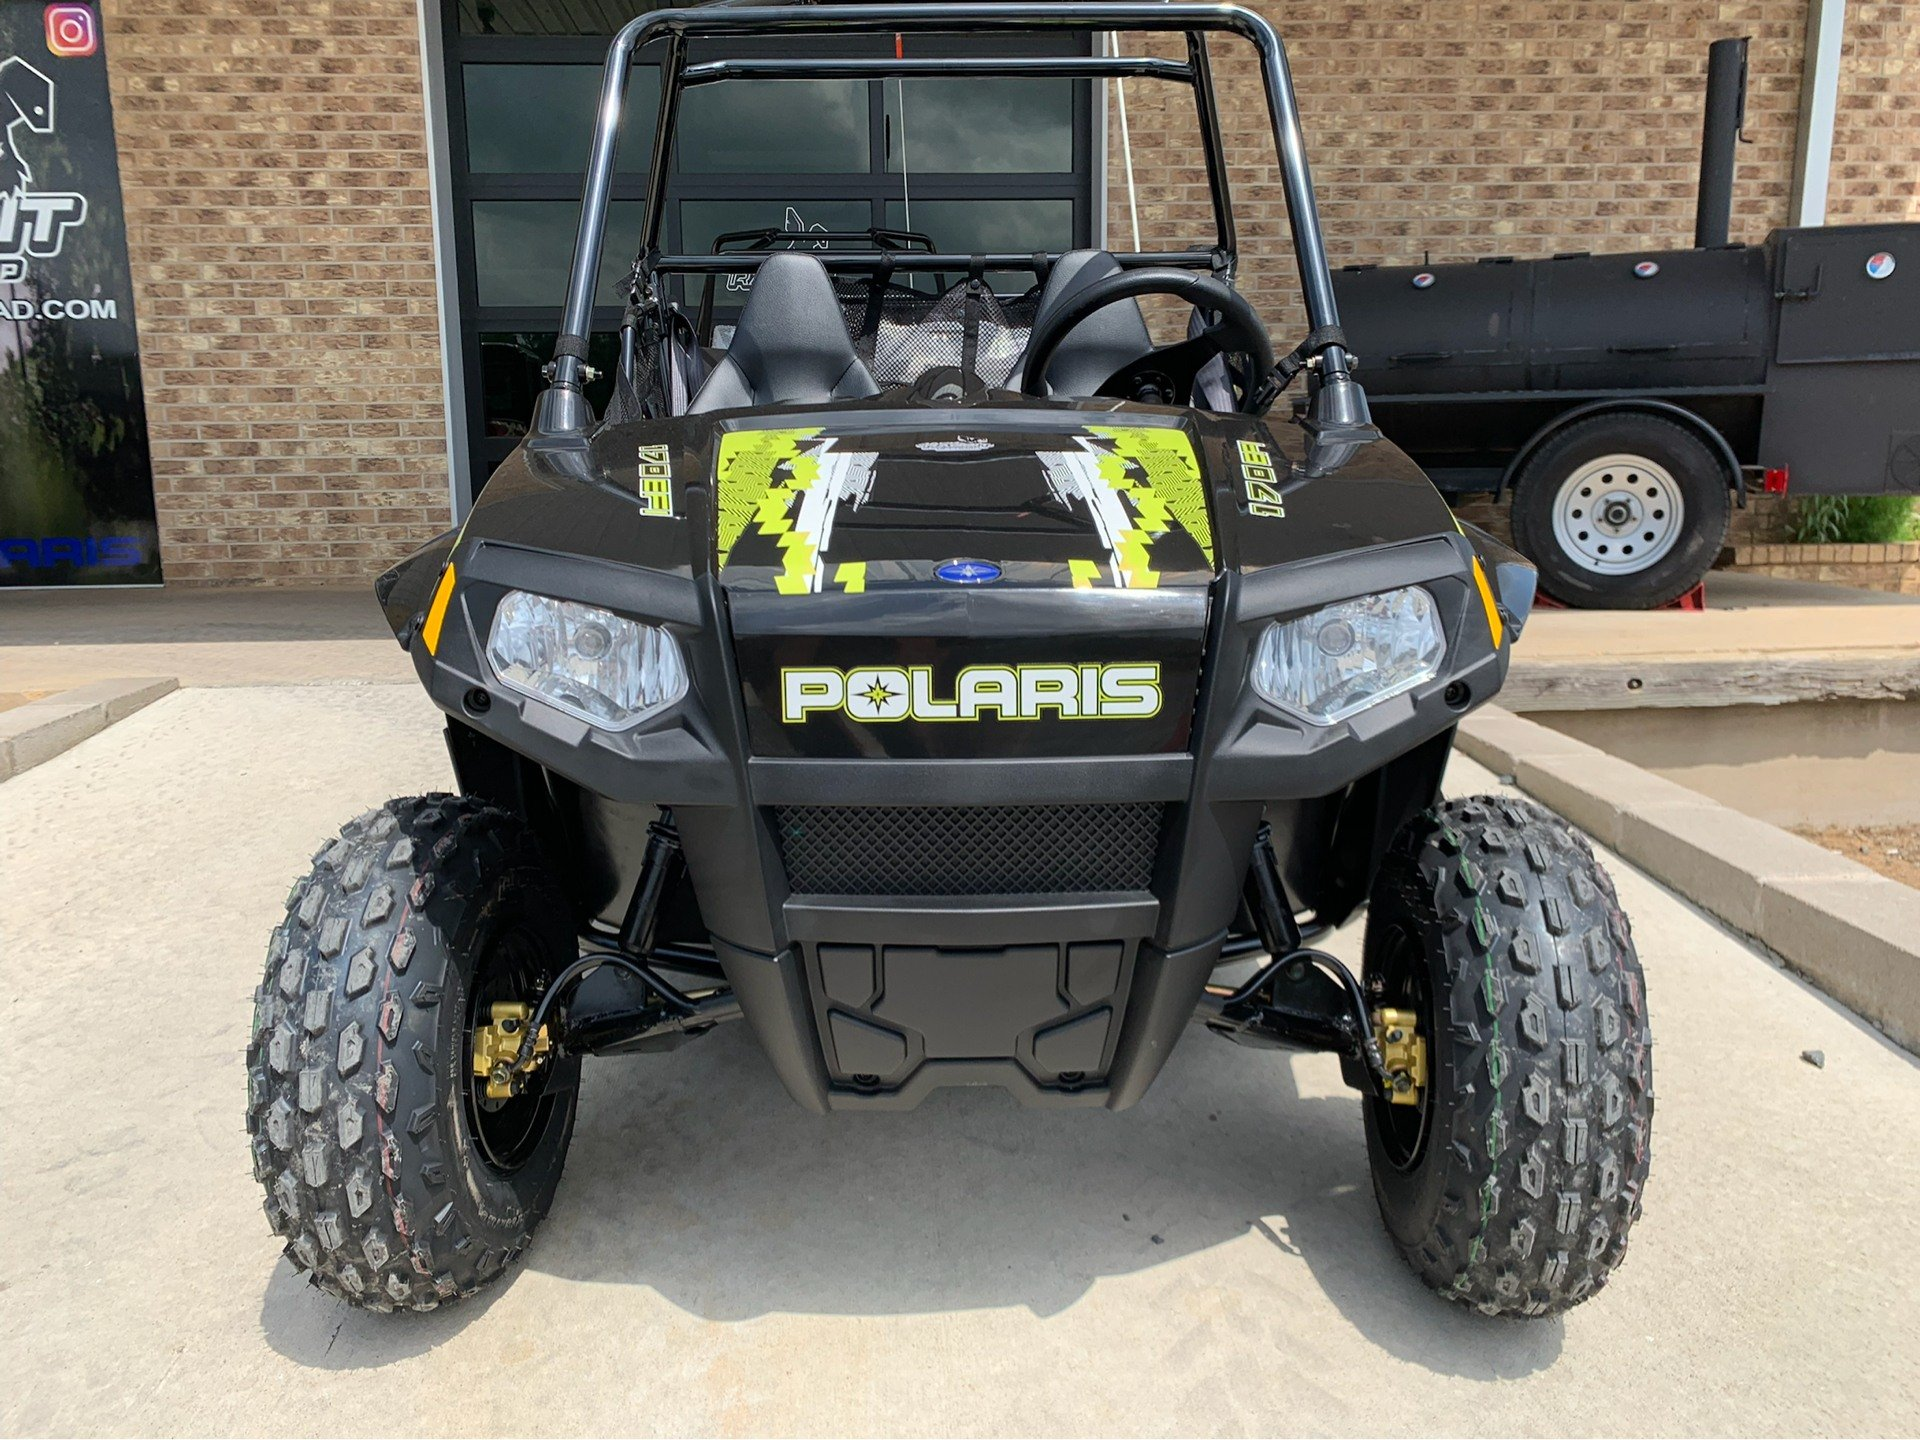 33 Polaris Rzr 170 Parts Diagram